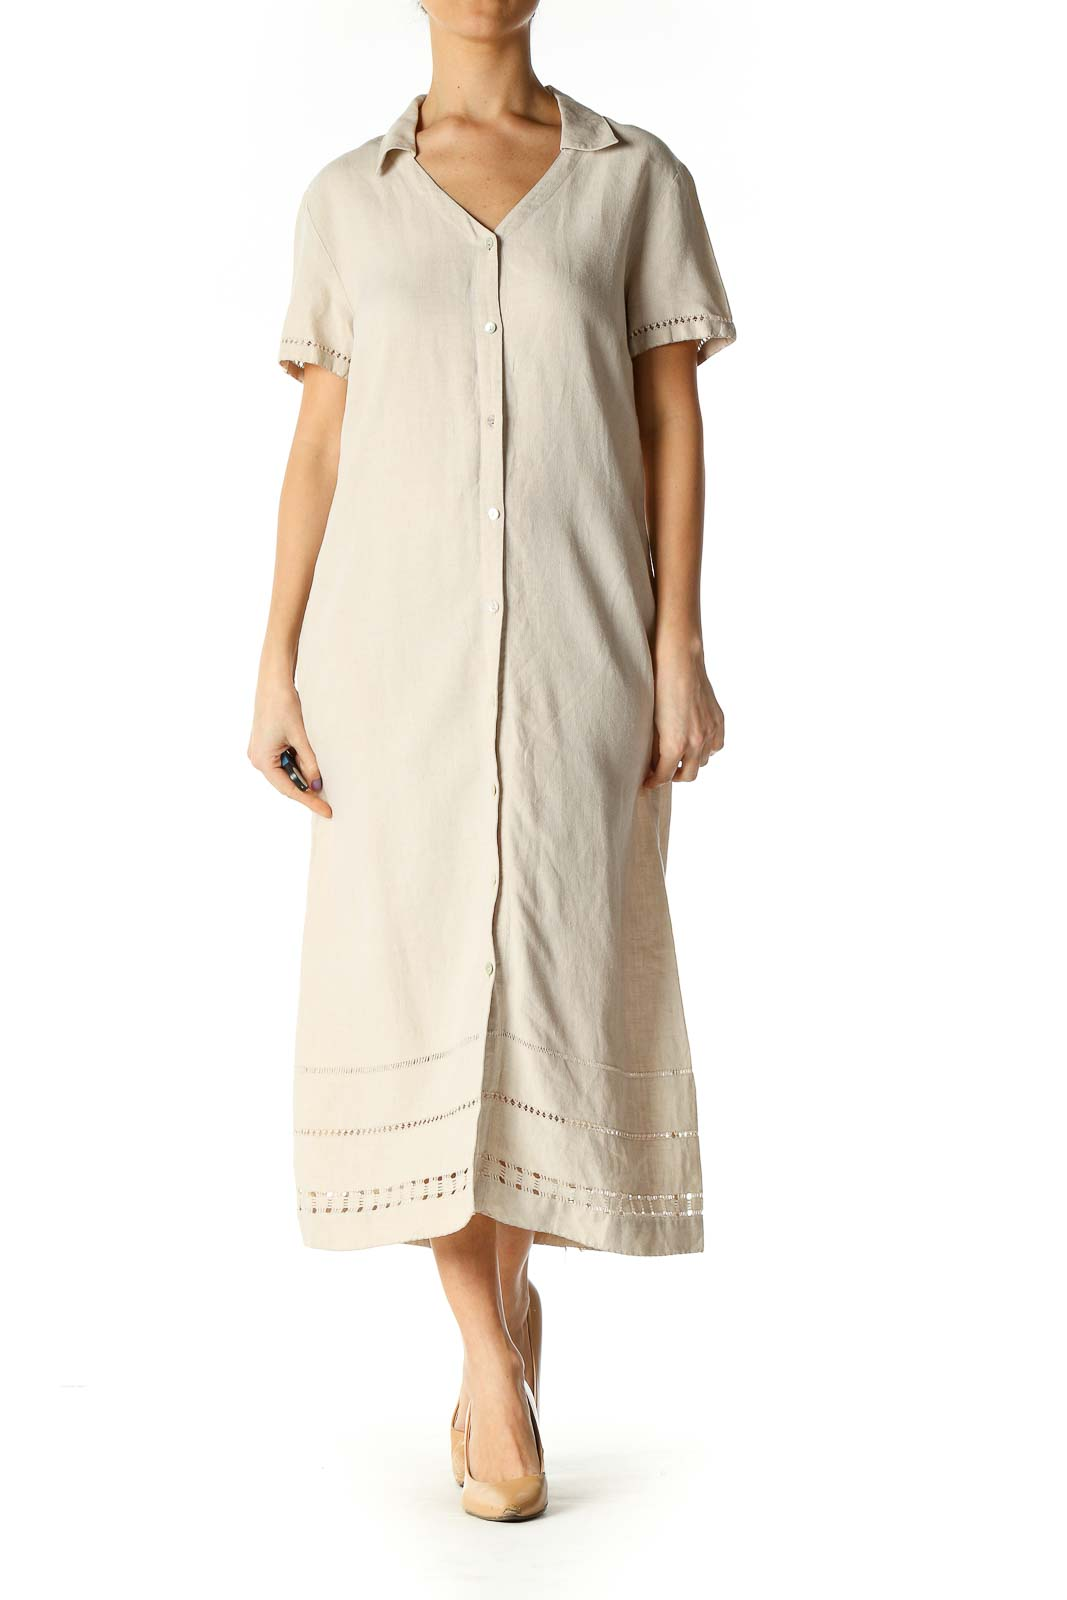 Beige Solid Casual A-Line Dress Front